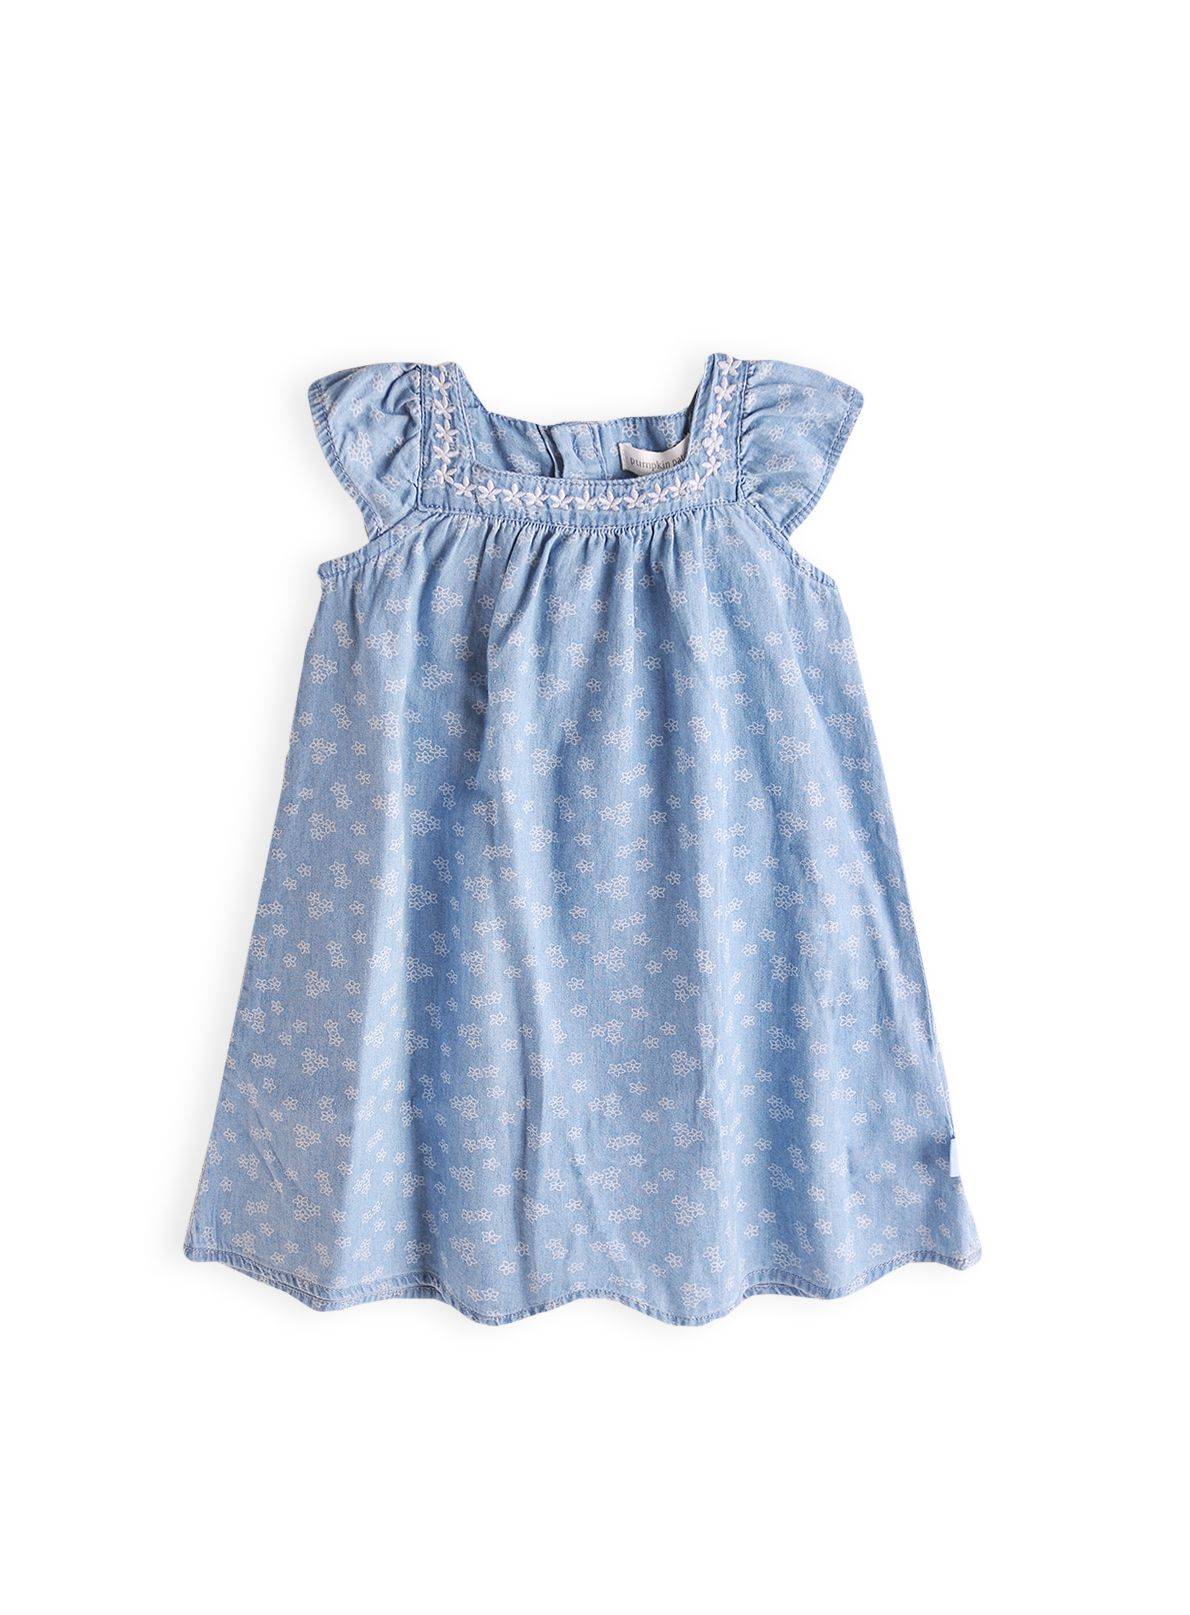 Girls frangapani chambray dress